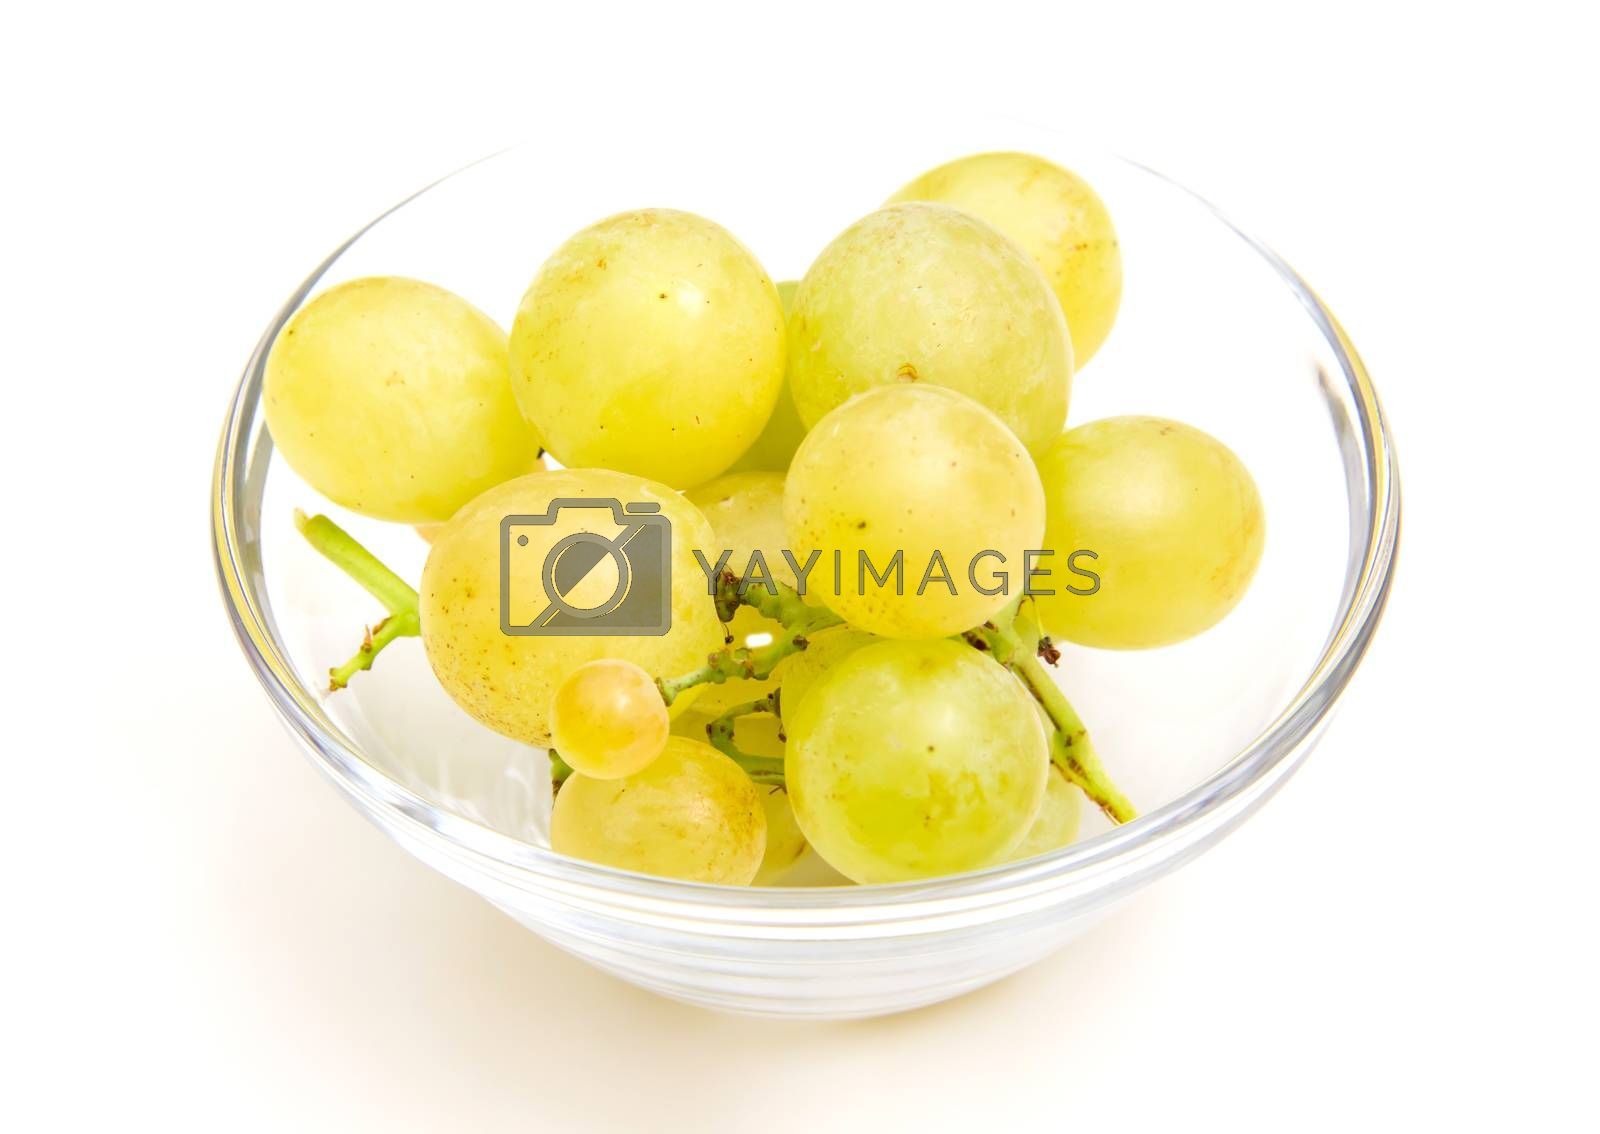 Grapes on a bowl close up view on white background